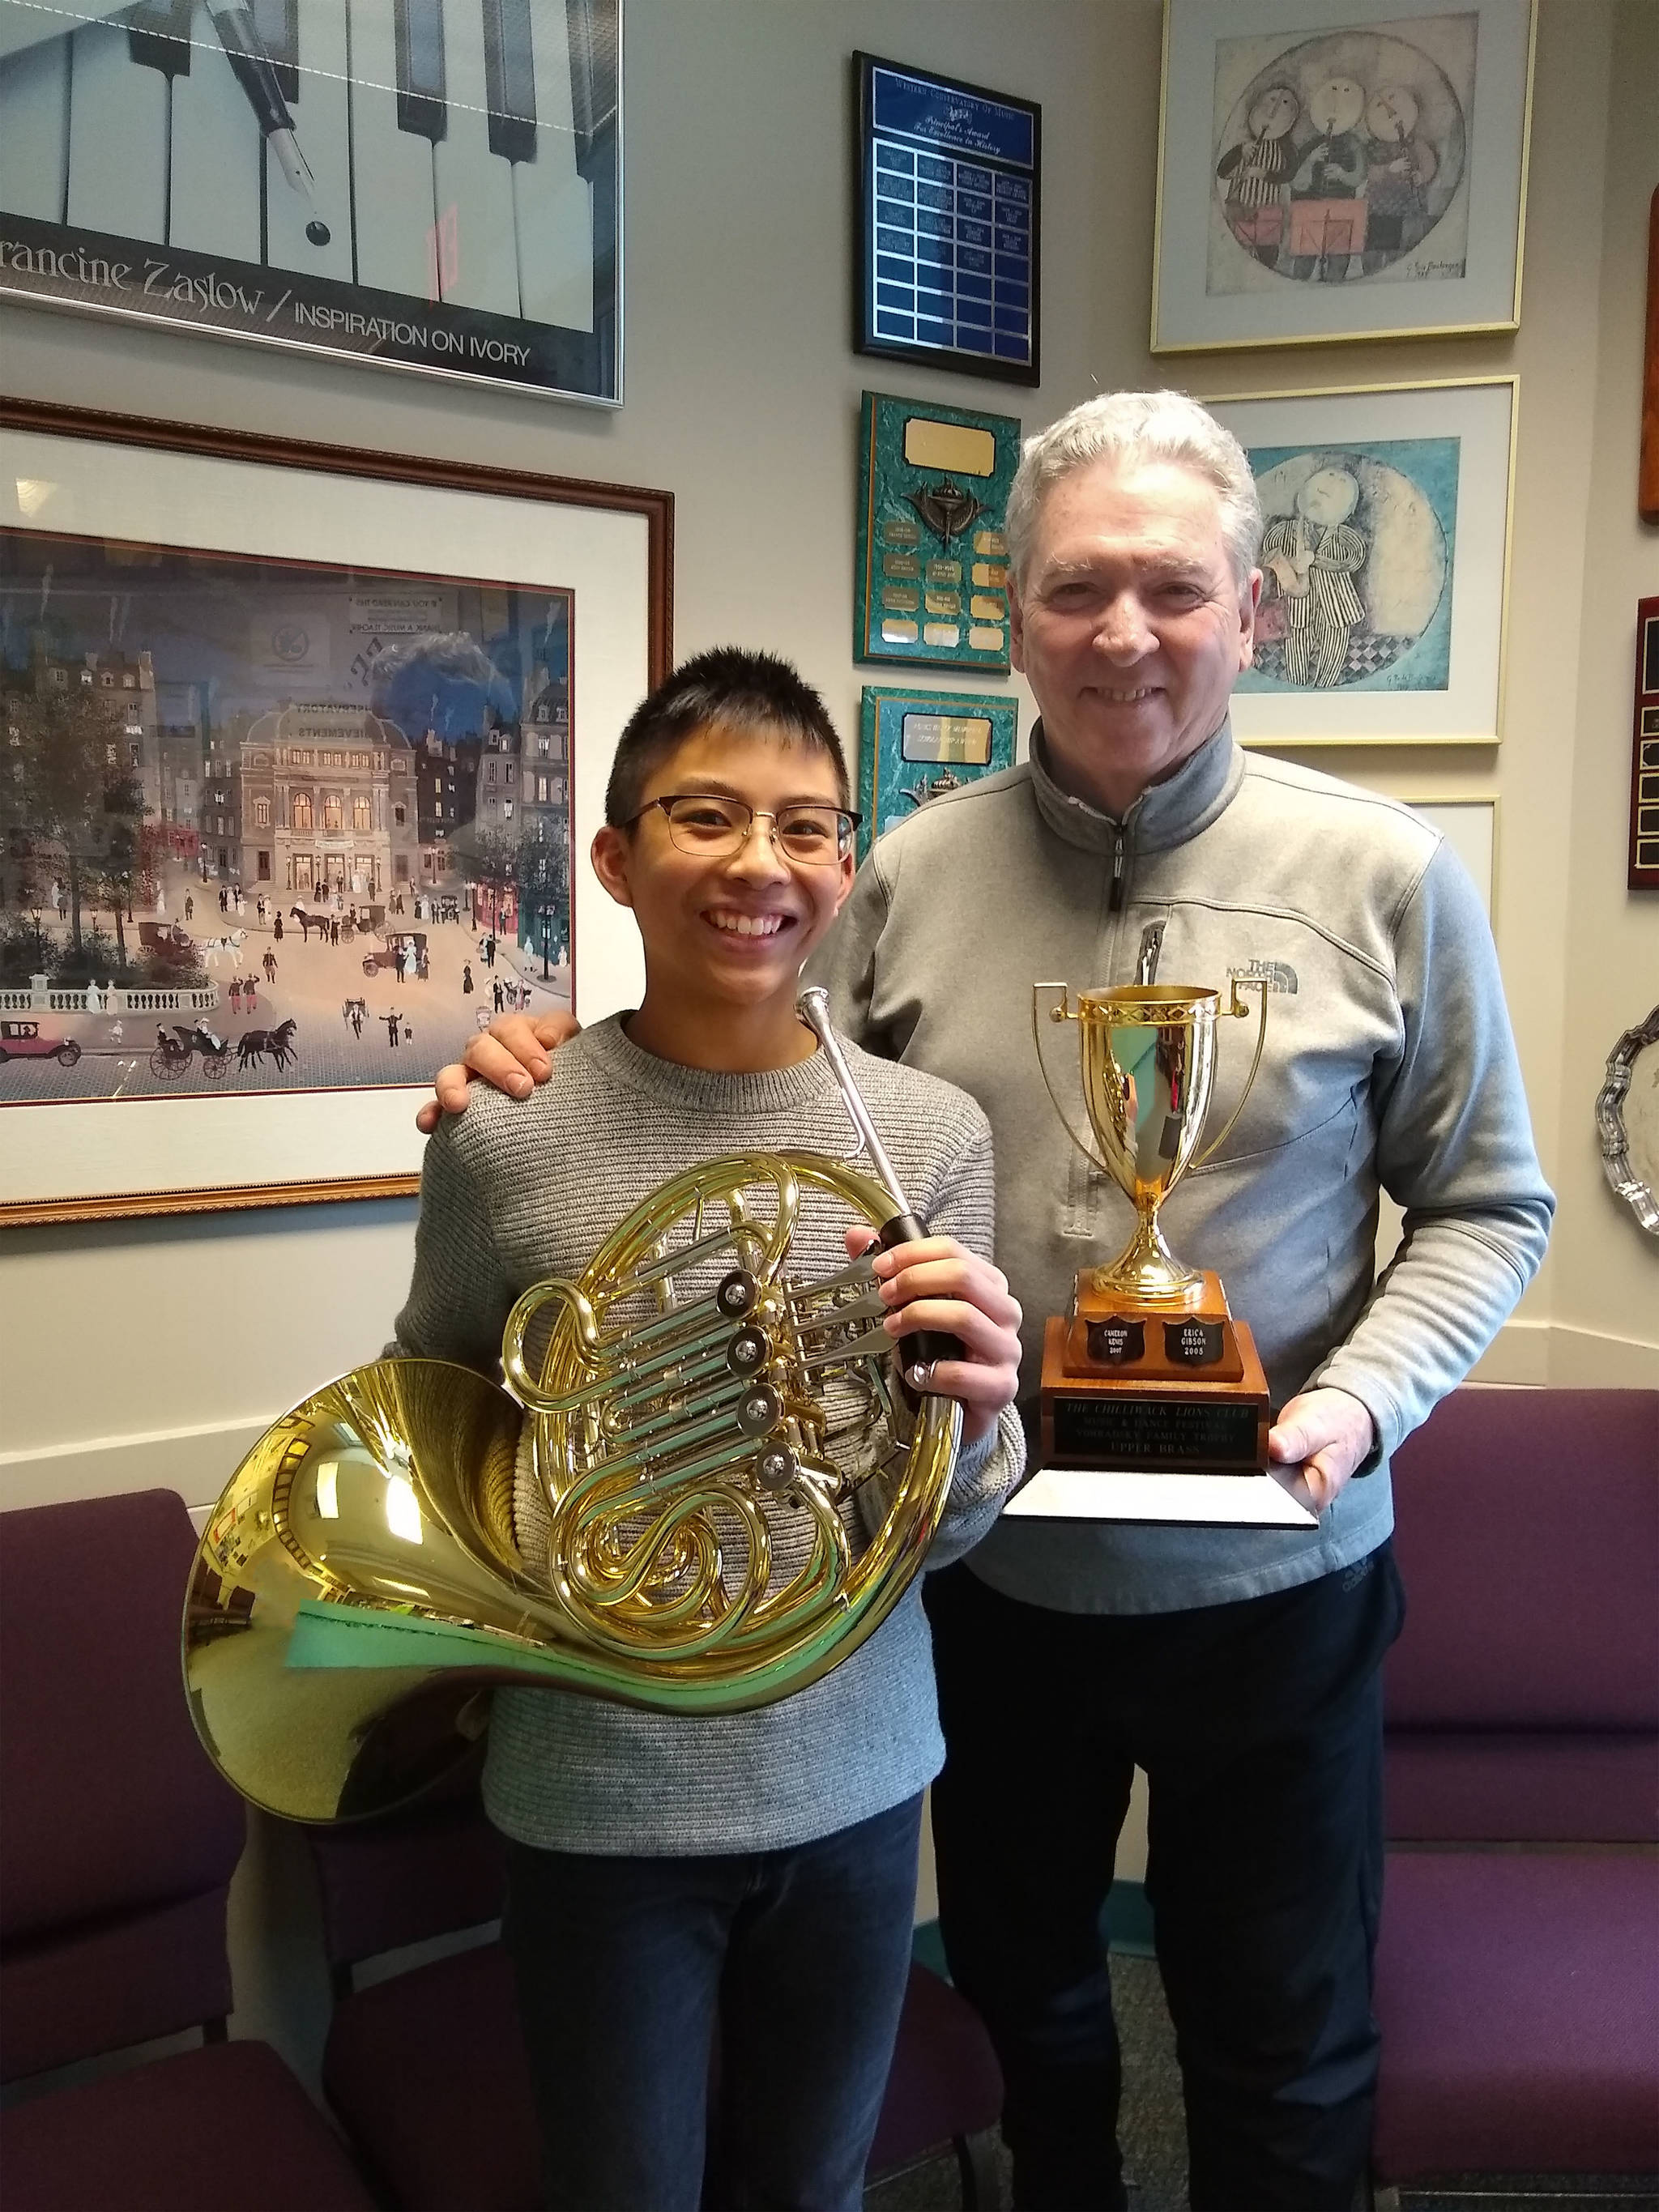 Langley French horn player earns fanfare at Chilliwack Lions Club Music Festival